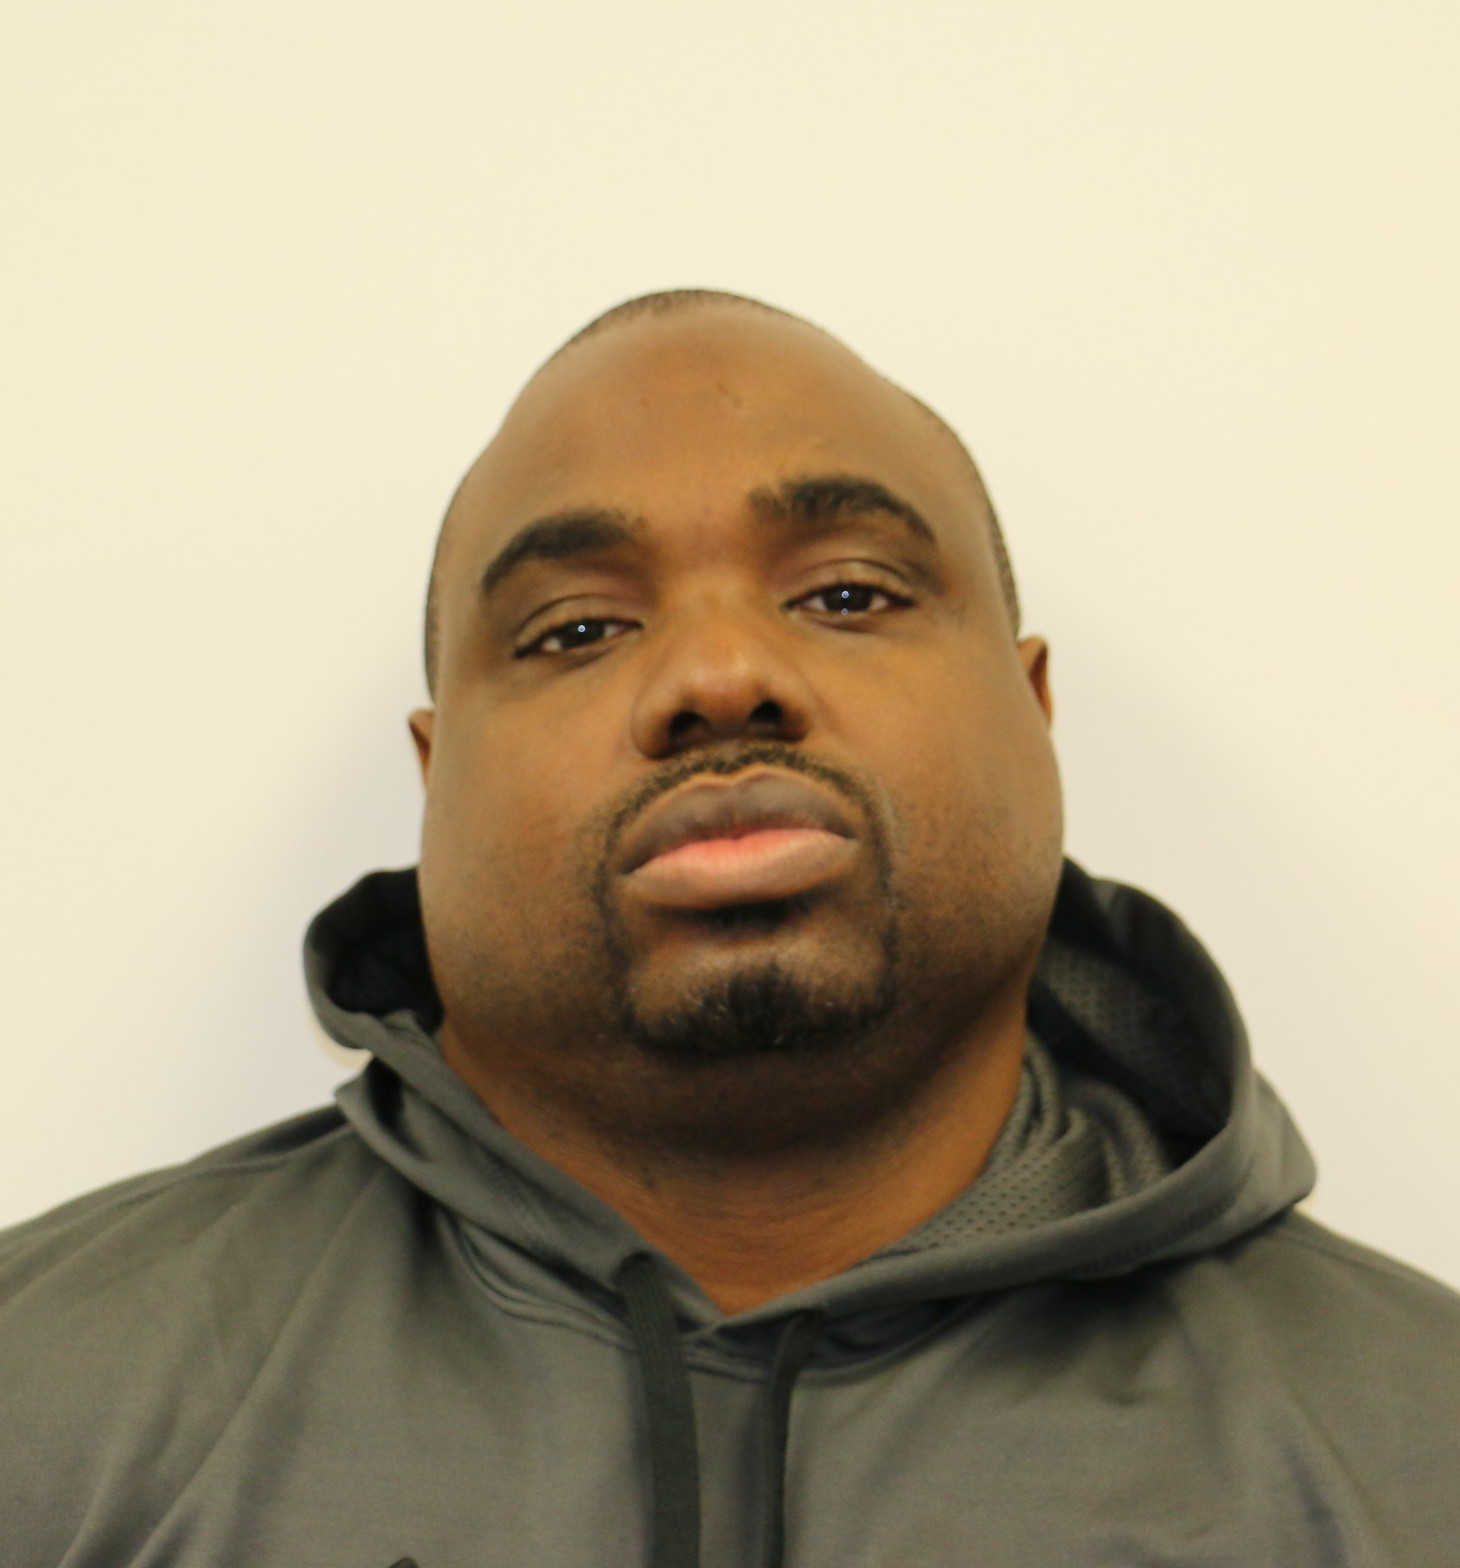 <div class='meta'><div class='origin-logo' data-origin='WABC'></div><span class='caption-text' data-credit=''>John Beaubrun, one of 17 defendants arrested in a multi-state heroin and cocaine smuggling ring.</span></div>